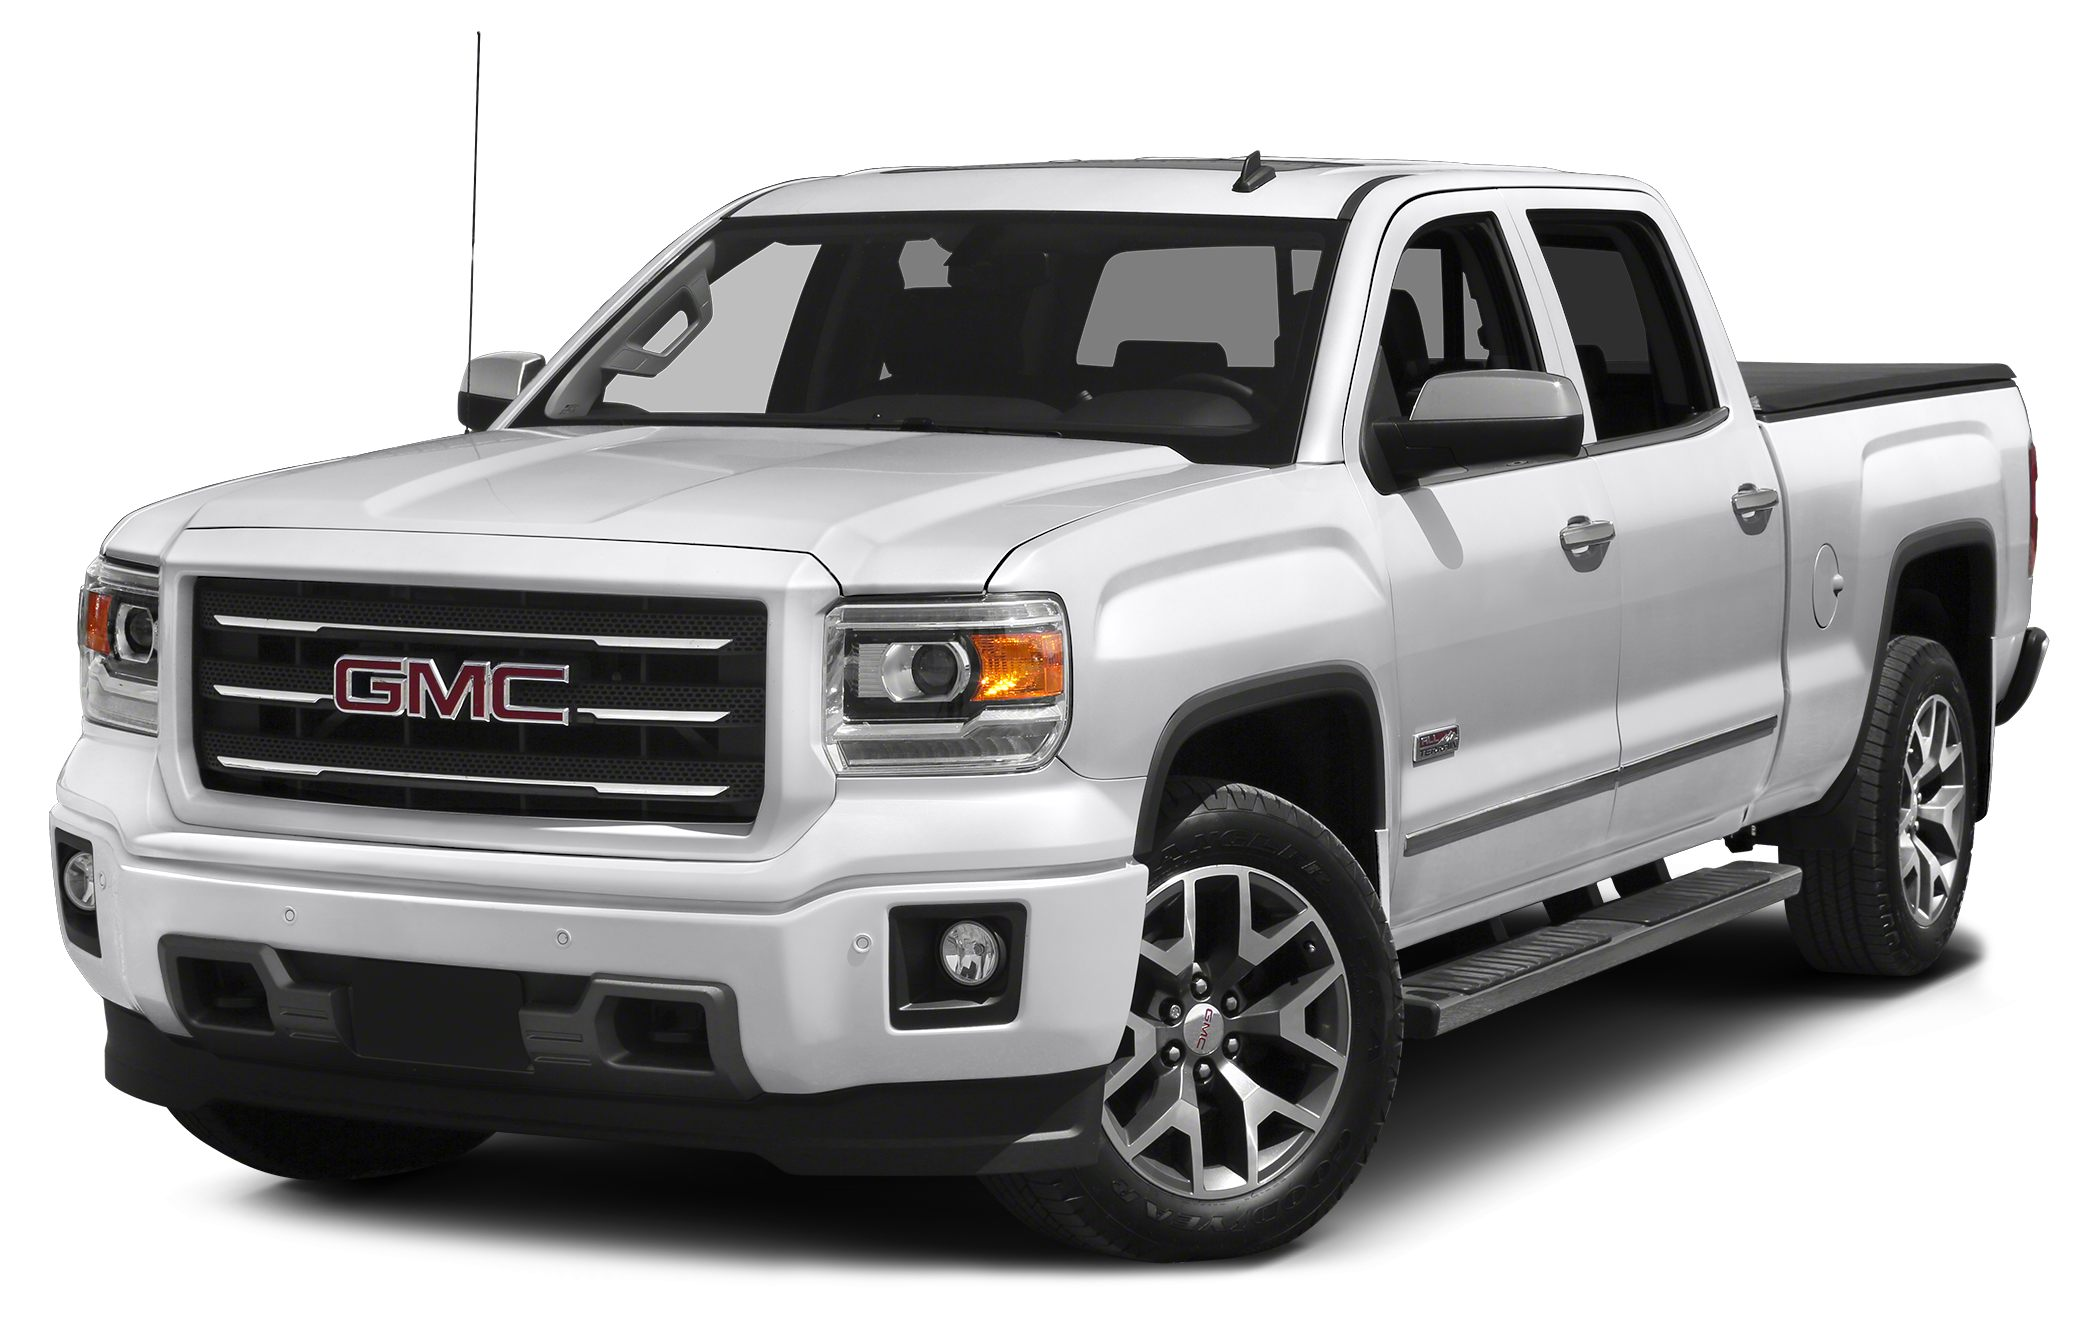 2015 GMC Sierra 1500 SLE 6-Speed Automatic Electronic with Overdrive 4WD and Jet Black Crew Cab